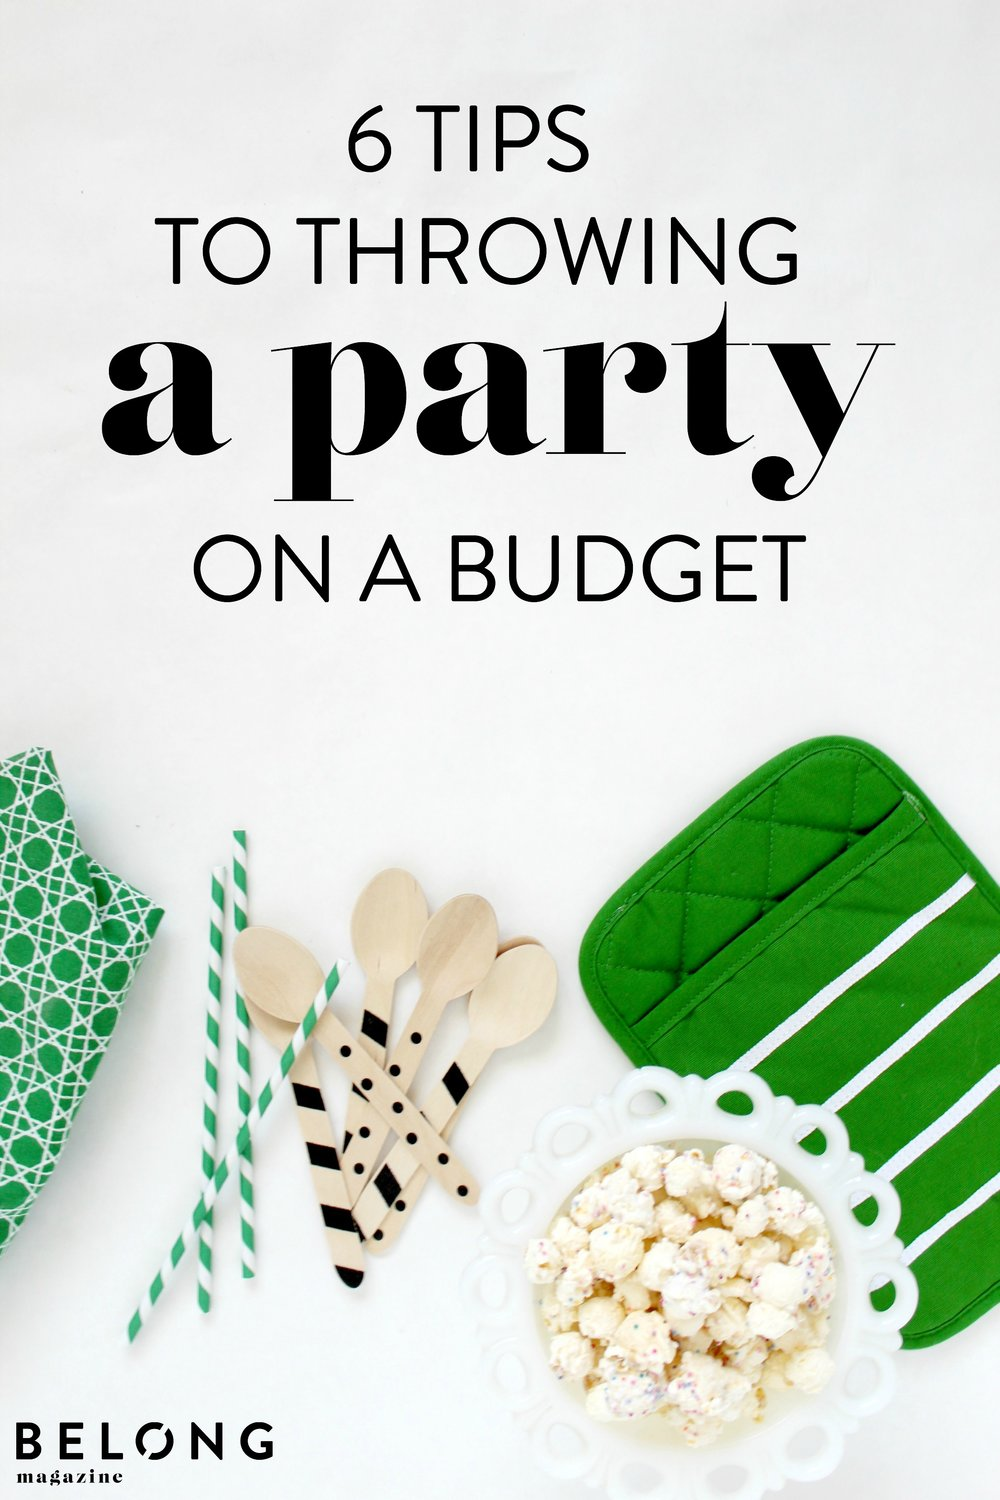 Throwing a party on a budget